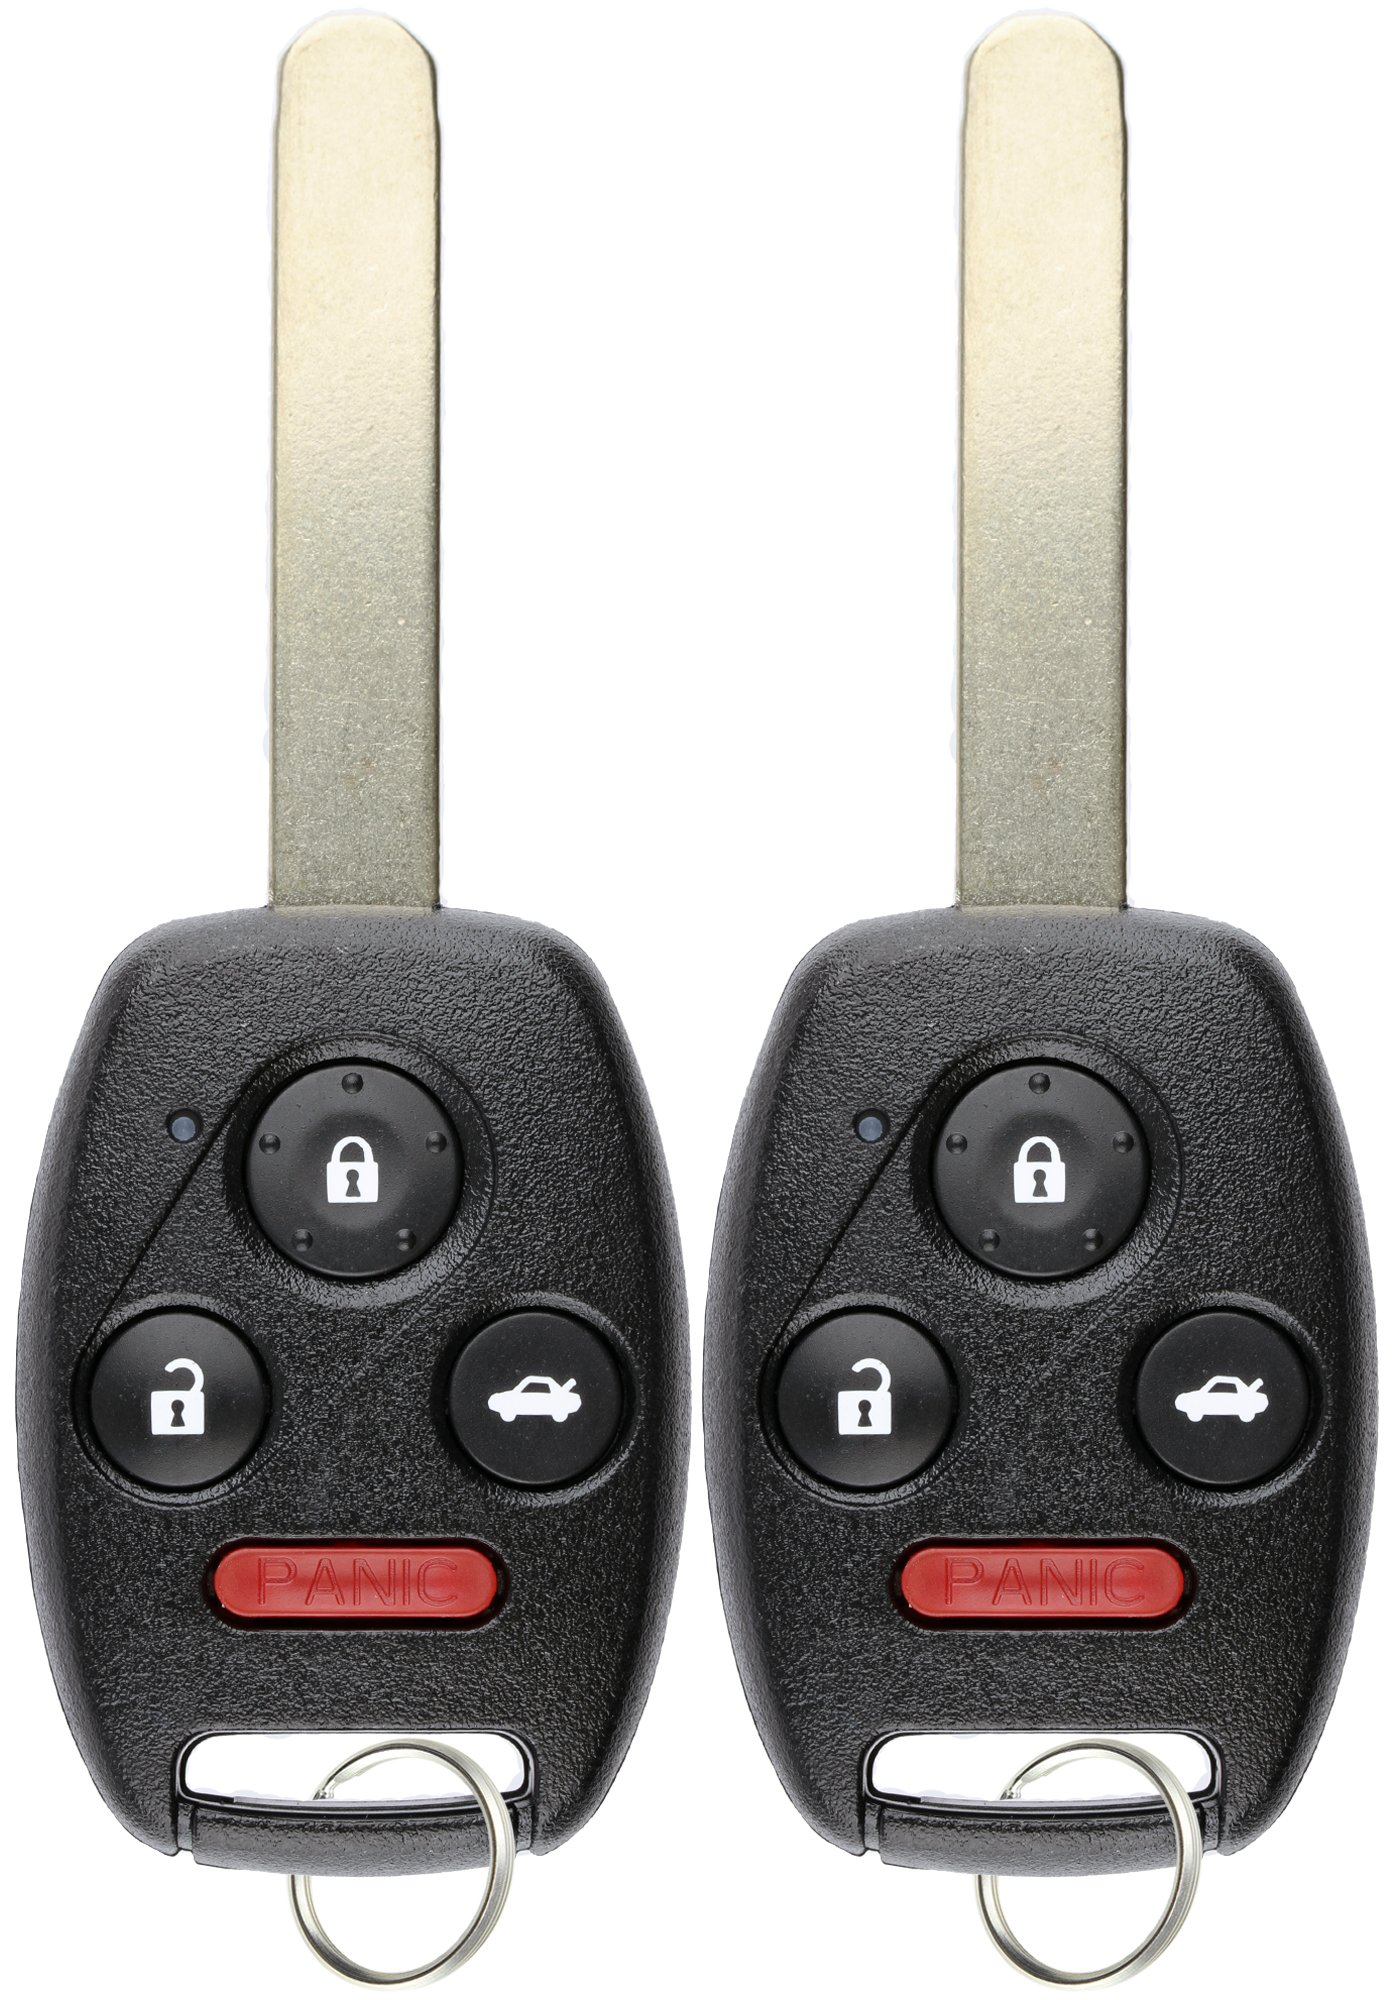 hight resolution of keylessoption keyless entry remote control uncut car ignition key fob replacement for oucg8d 380h a pack of 2